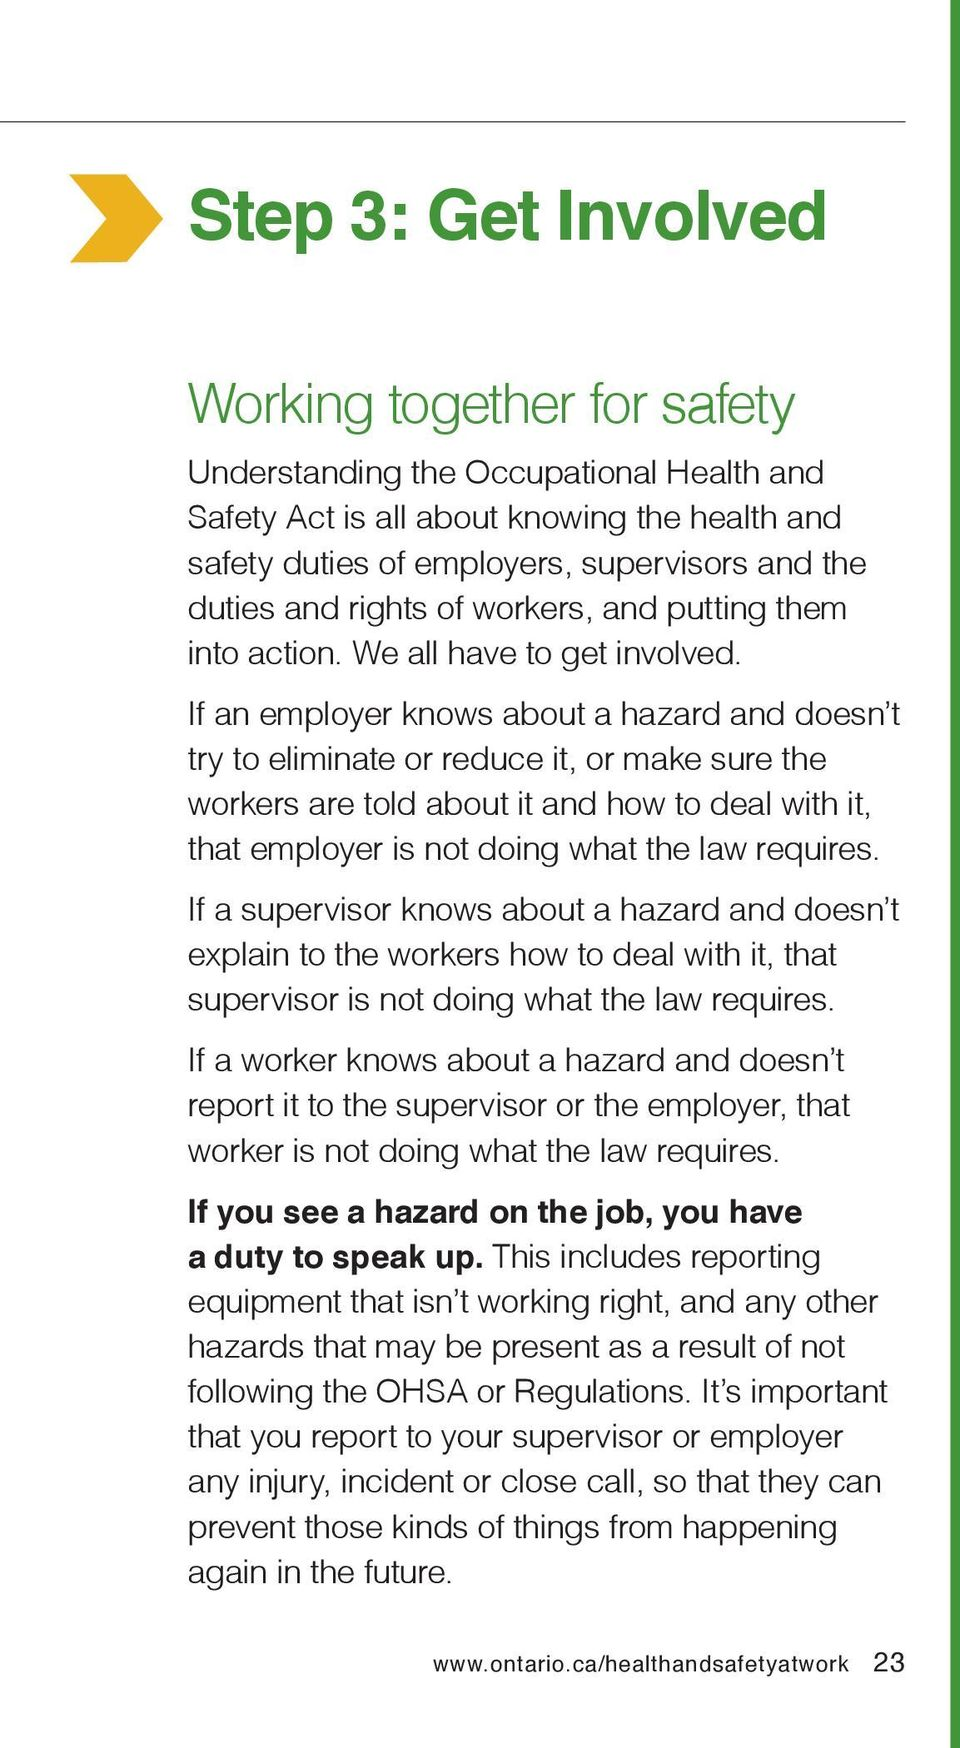 If an employer knows about a hazard and doesn t try to eliminate or reduce it, or make sure the workers are told about it and how to deal with it, that employer is not doing what the law requires.